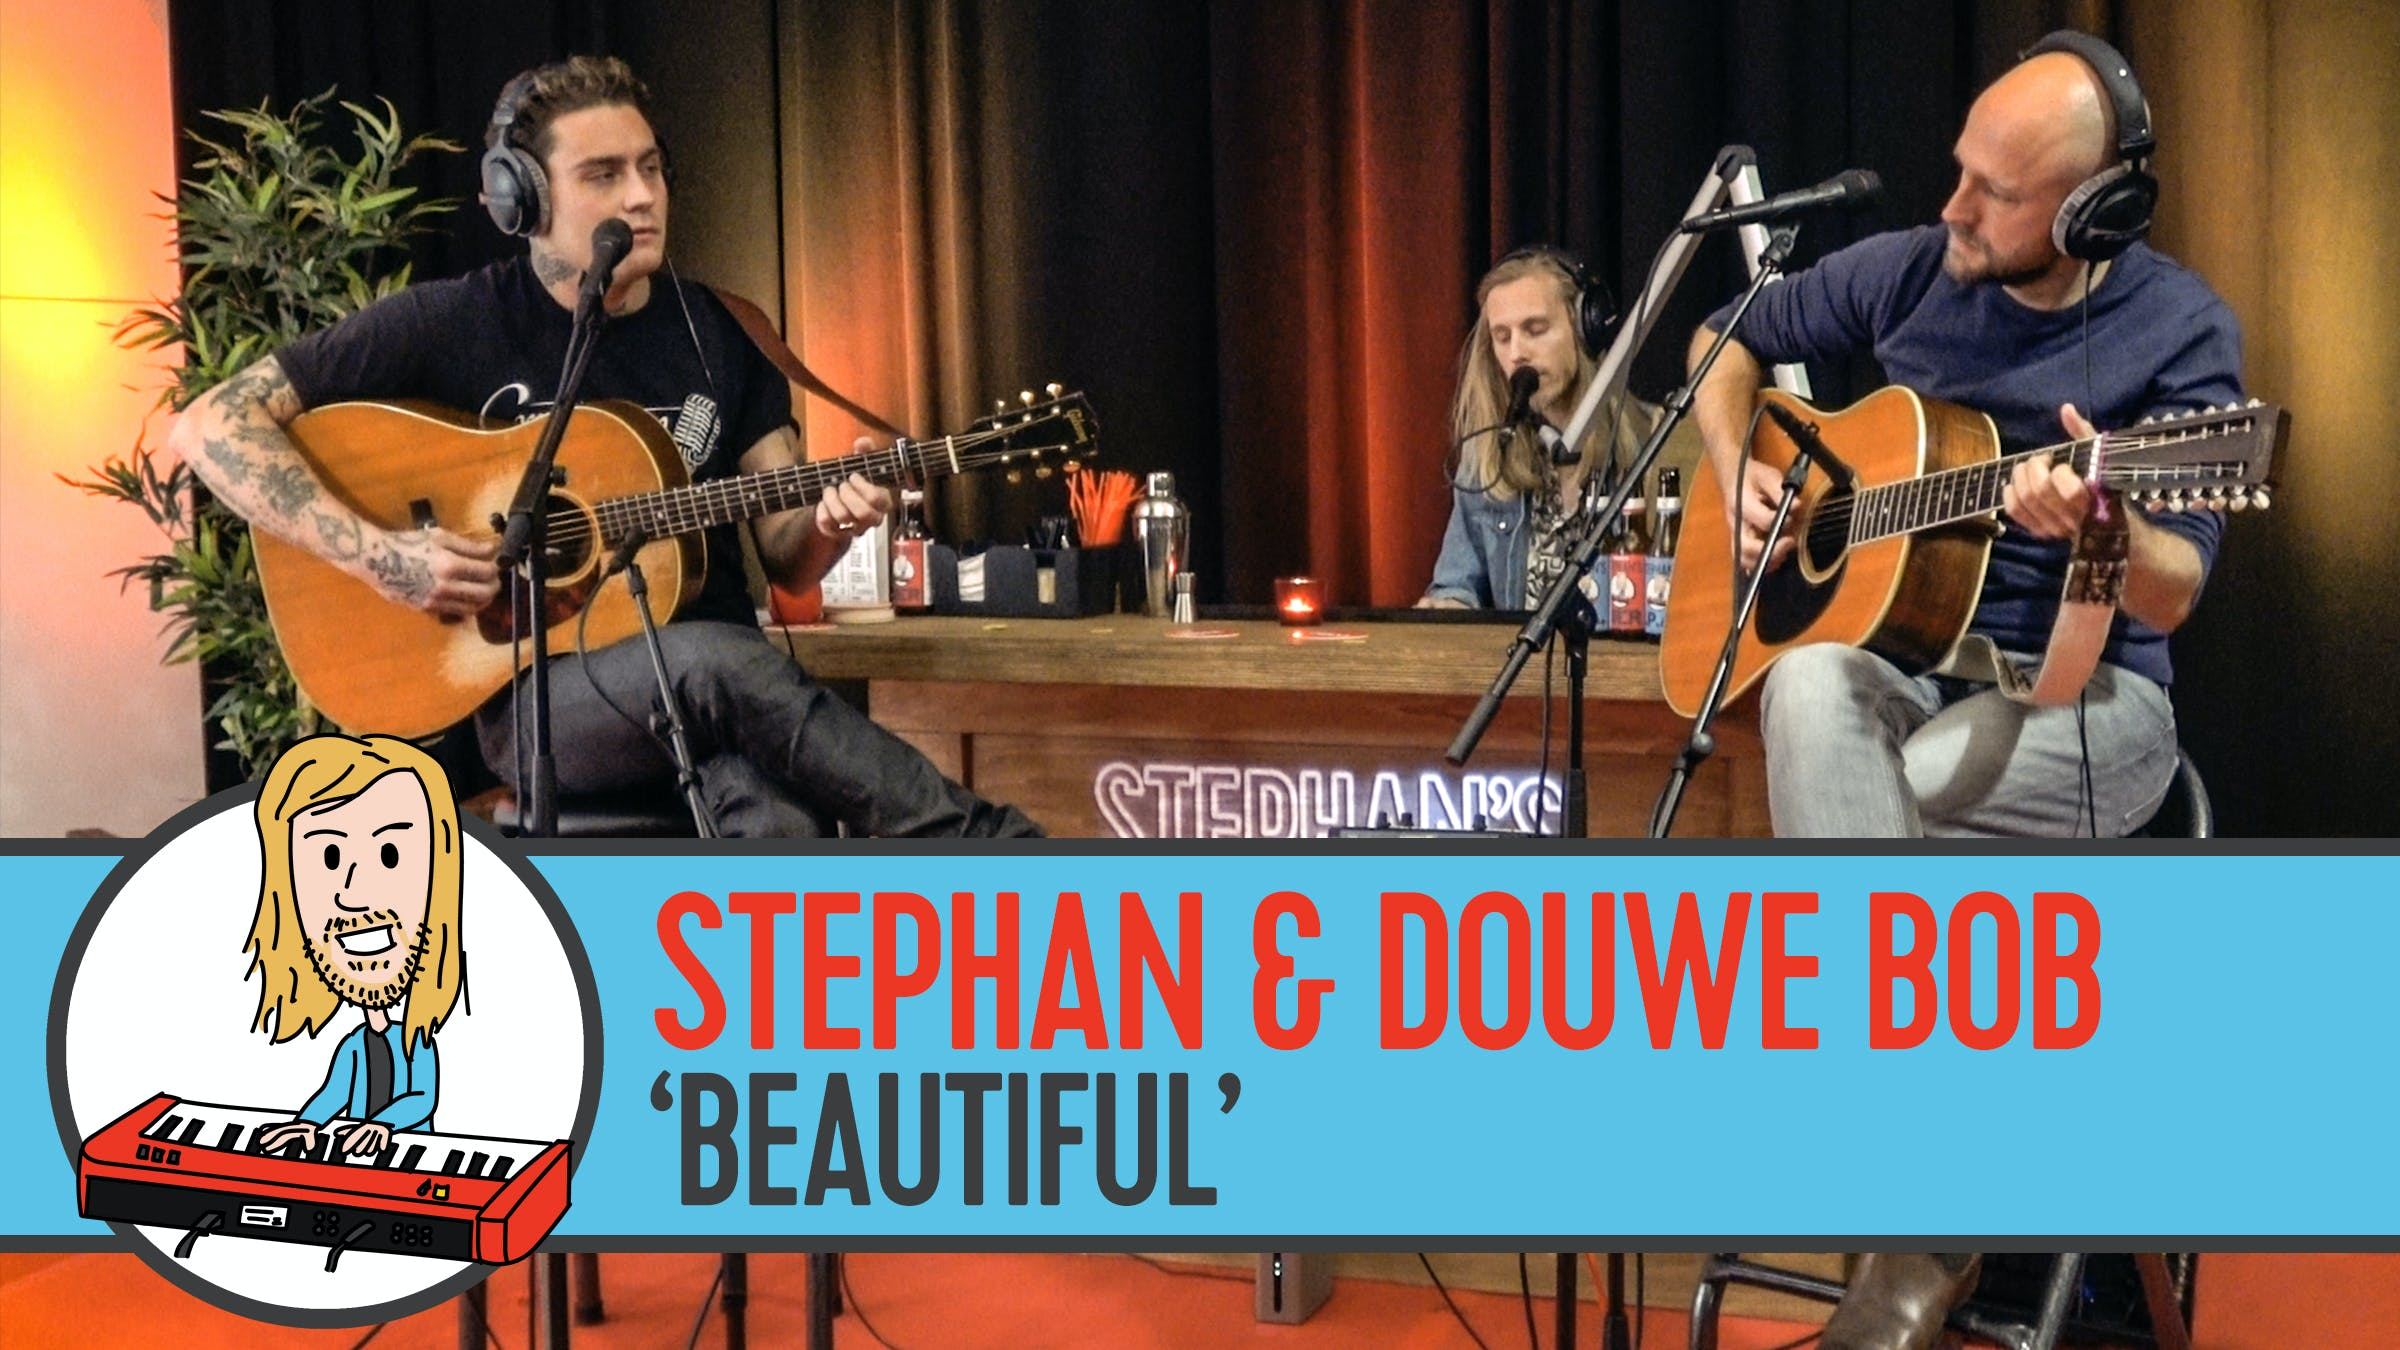 Douwe Bob en Stephan zingen 'Beautiful'